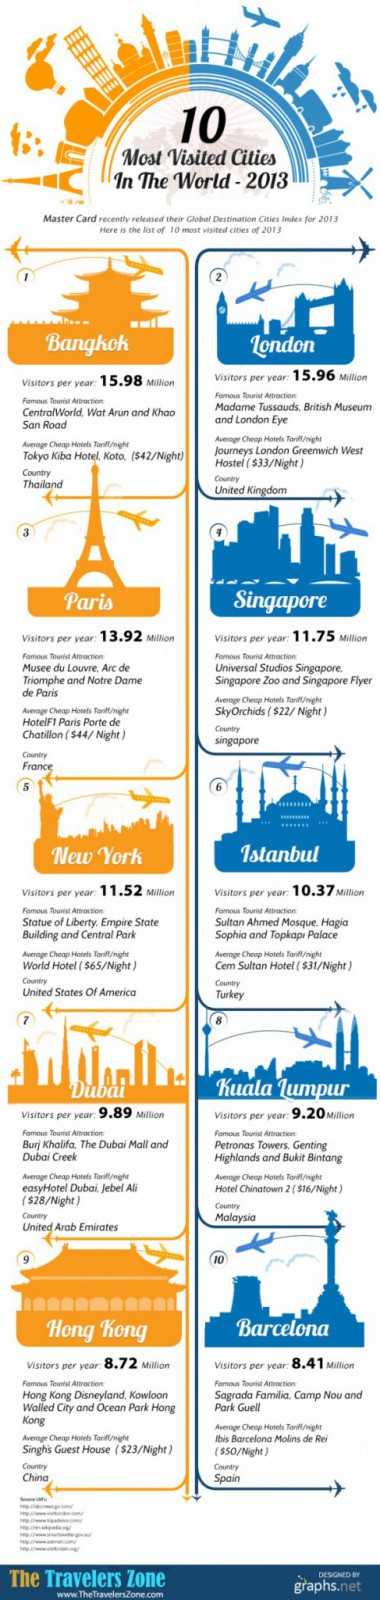 10-most-visited-cities-in-the-world-2013_522f139a34448_w587